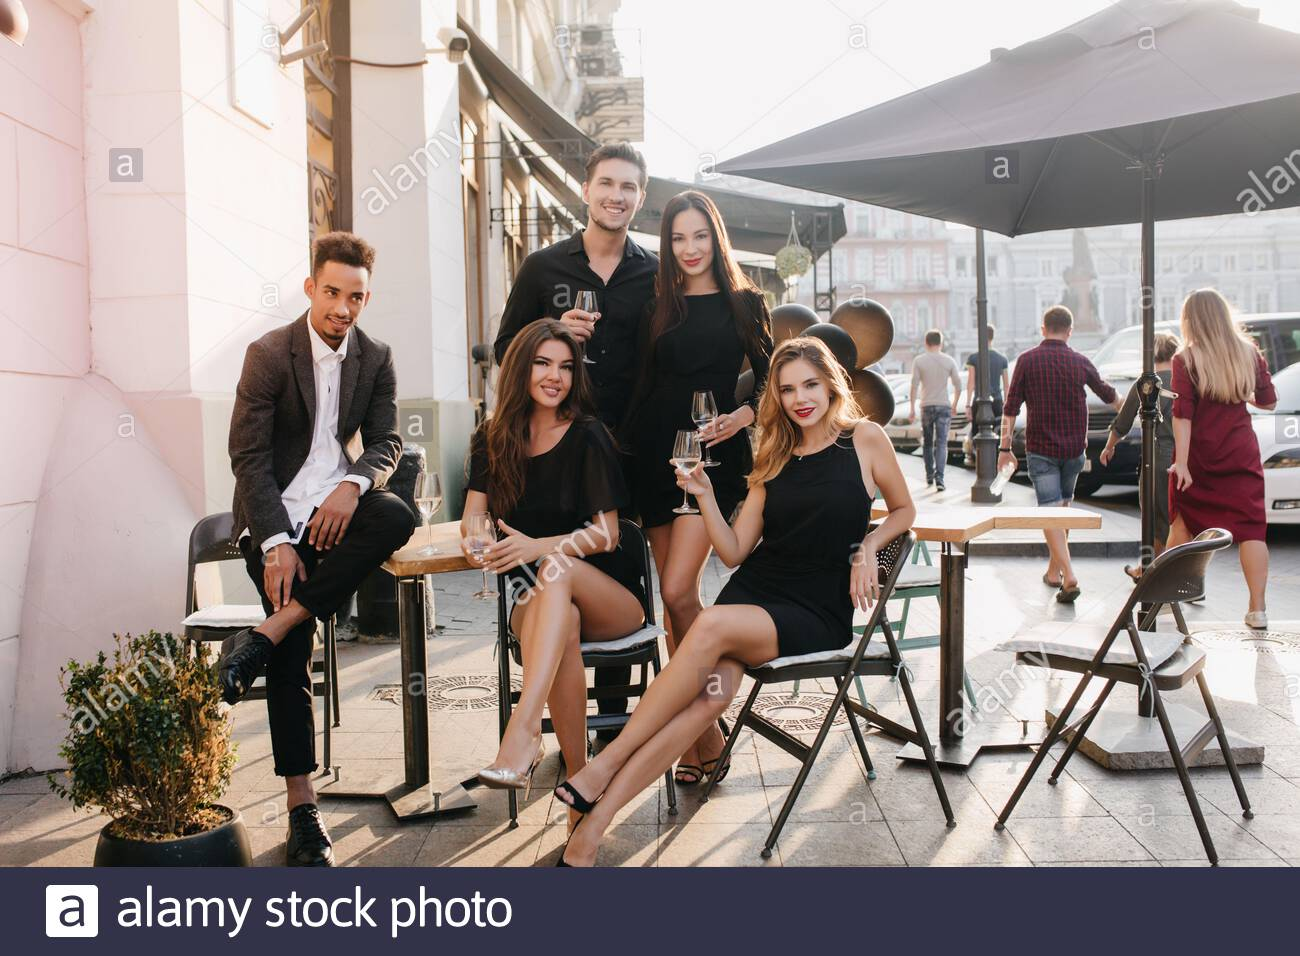 Stylish African Man Sitting In Confident Pose And Looking At Girls In Outdoor Cafe Portrait Of Happy Couple Posing On The Street With Friends Enjoying Meeting Stock Photo Alamy